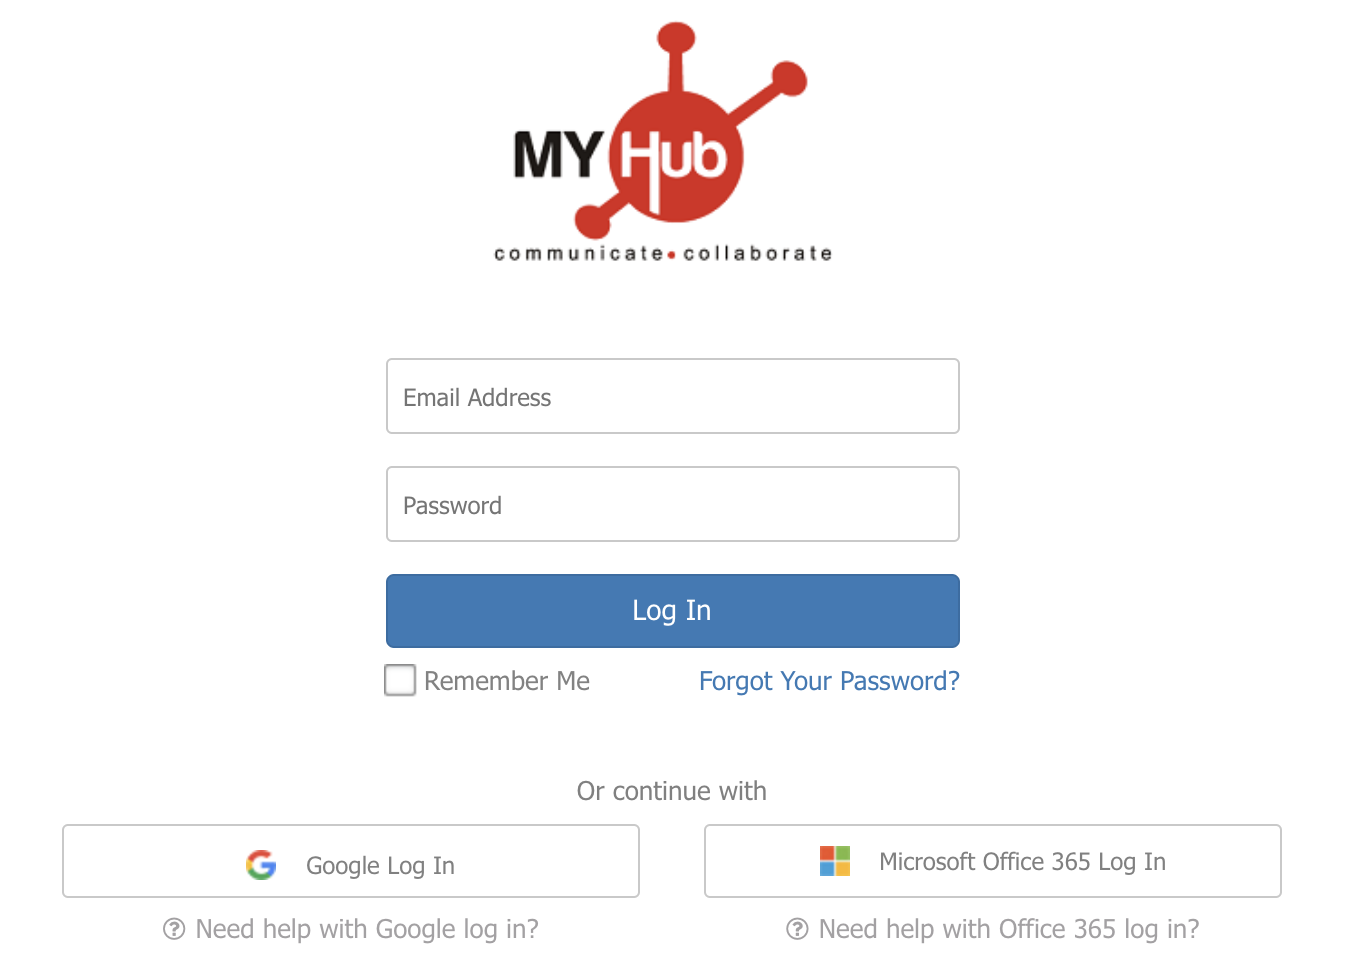 New MyHub log in page